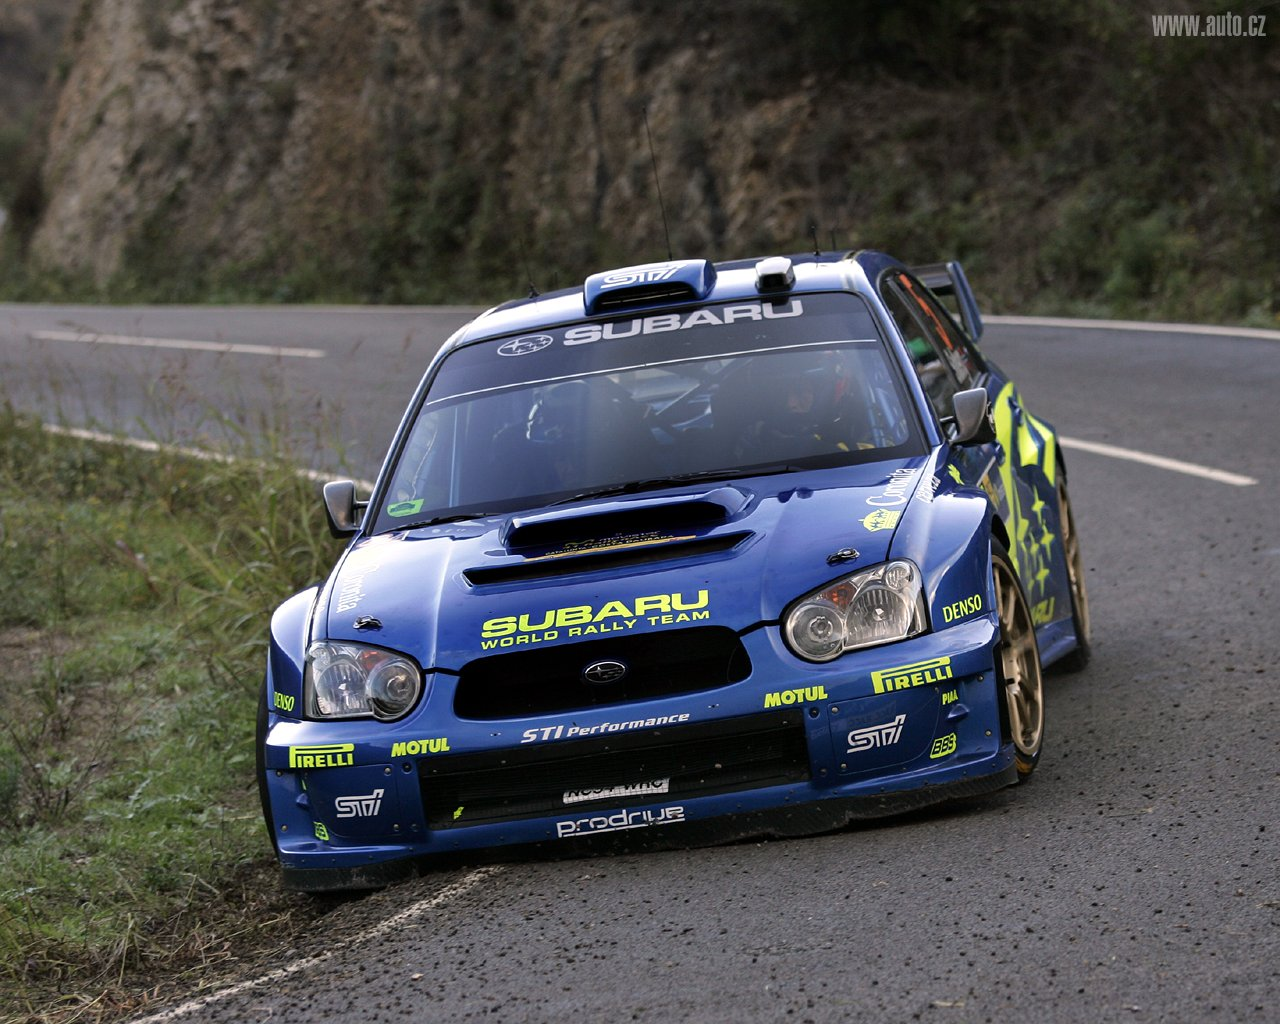 2006 Subaru Impreza Wrc Prototype Car Photos Catalog 2019